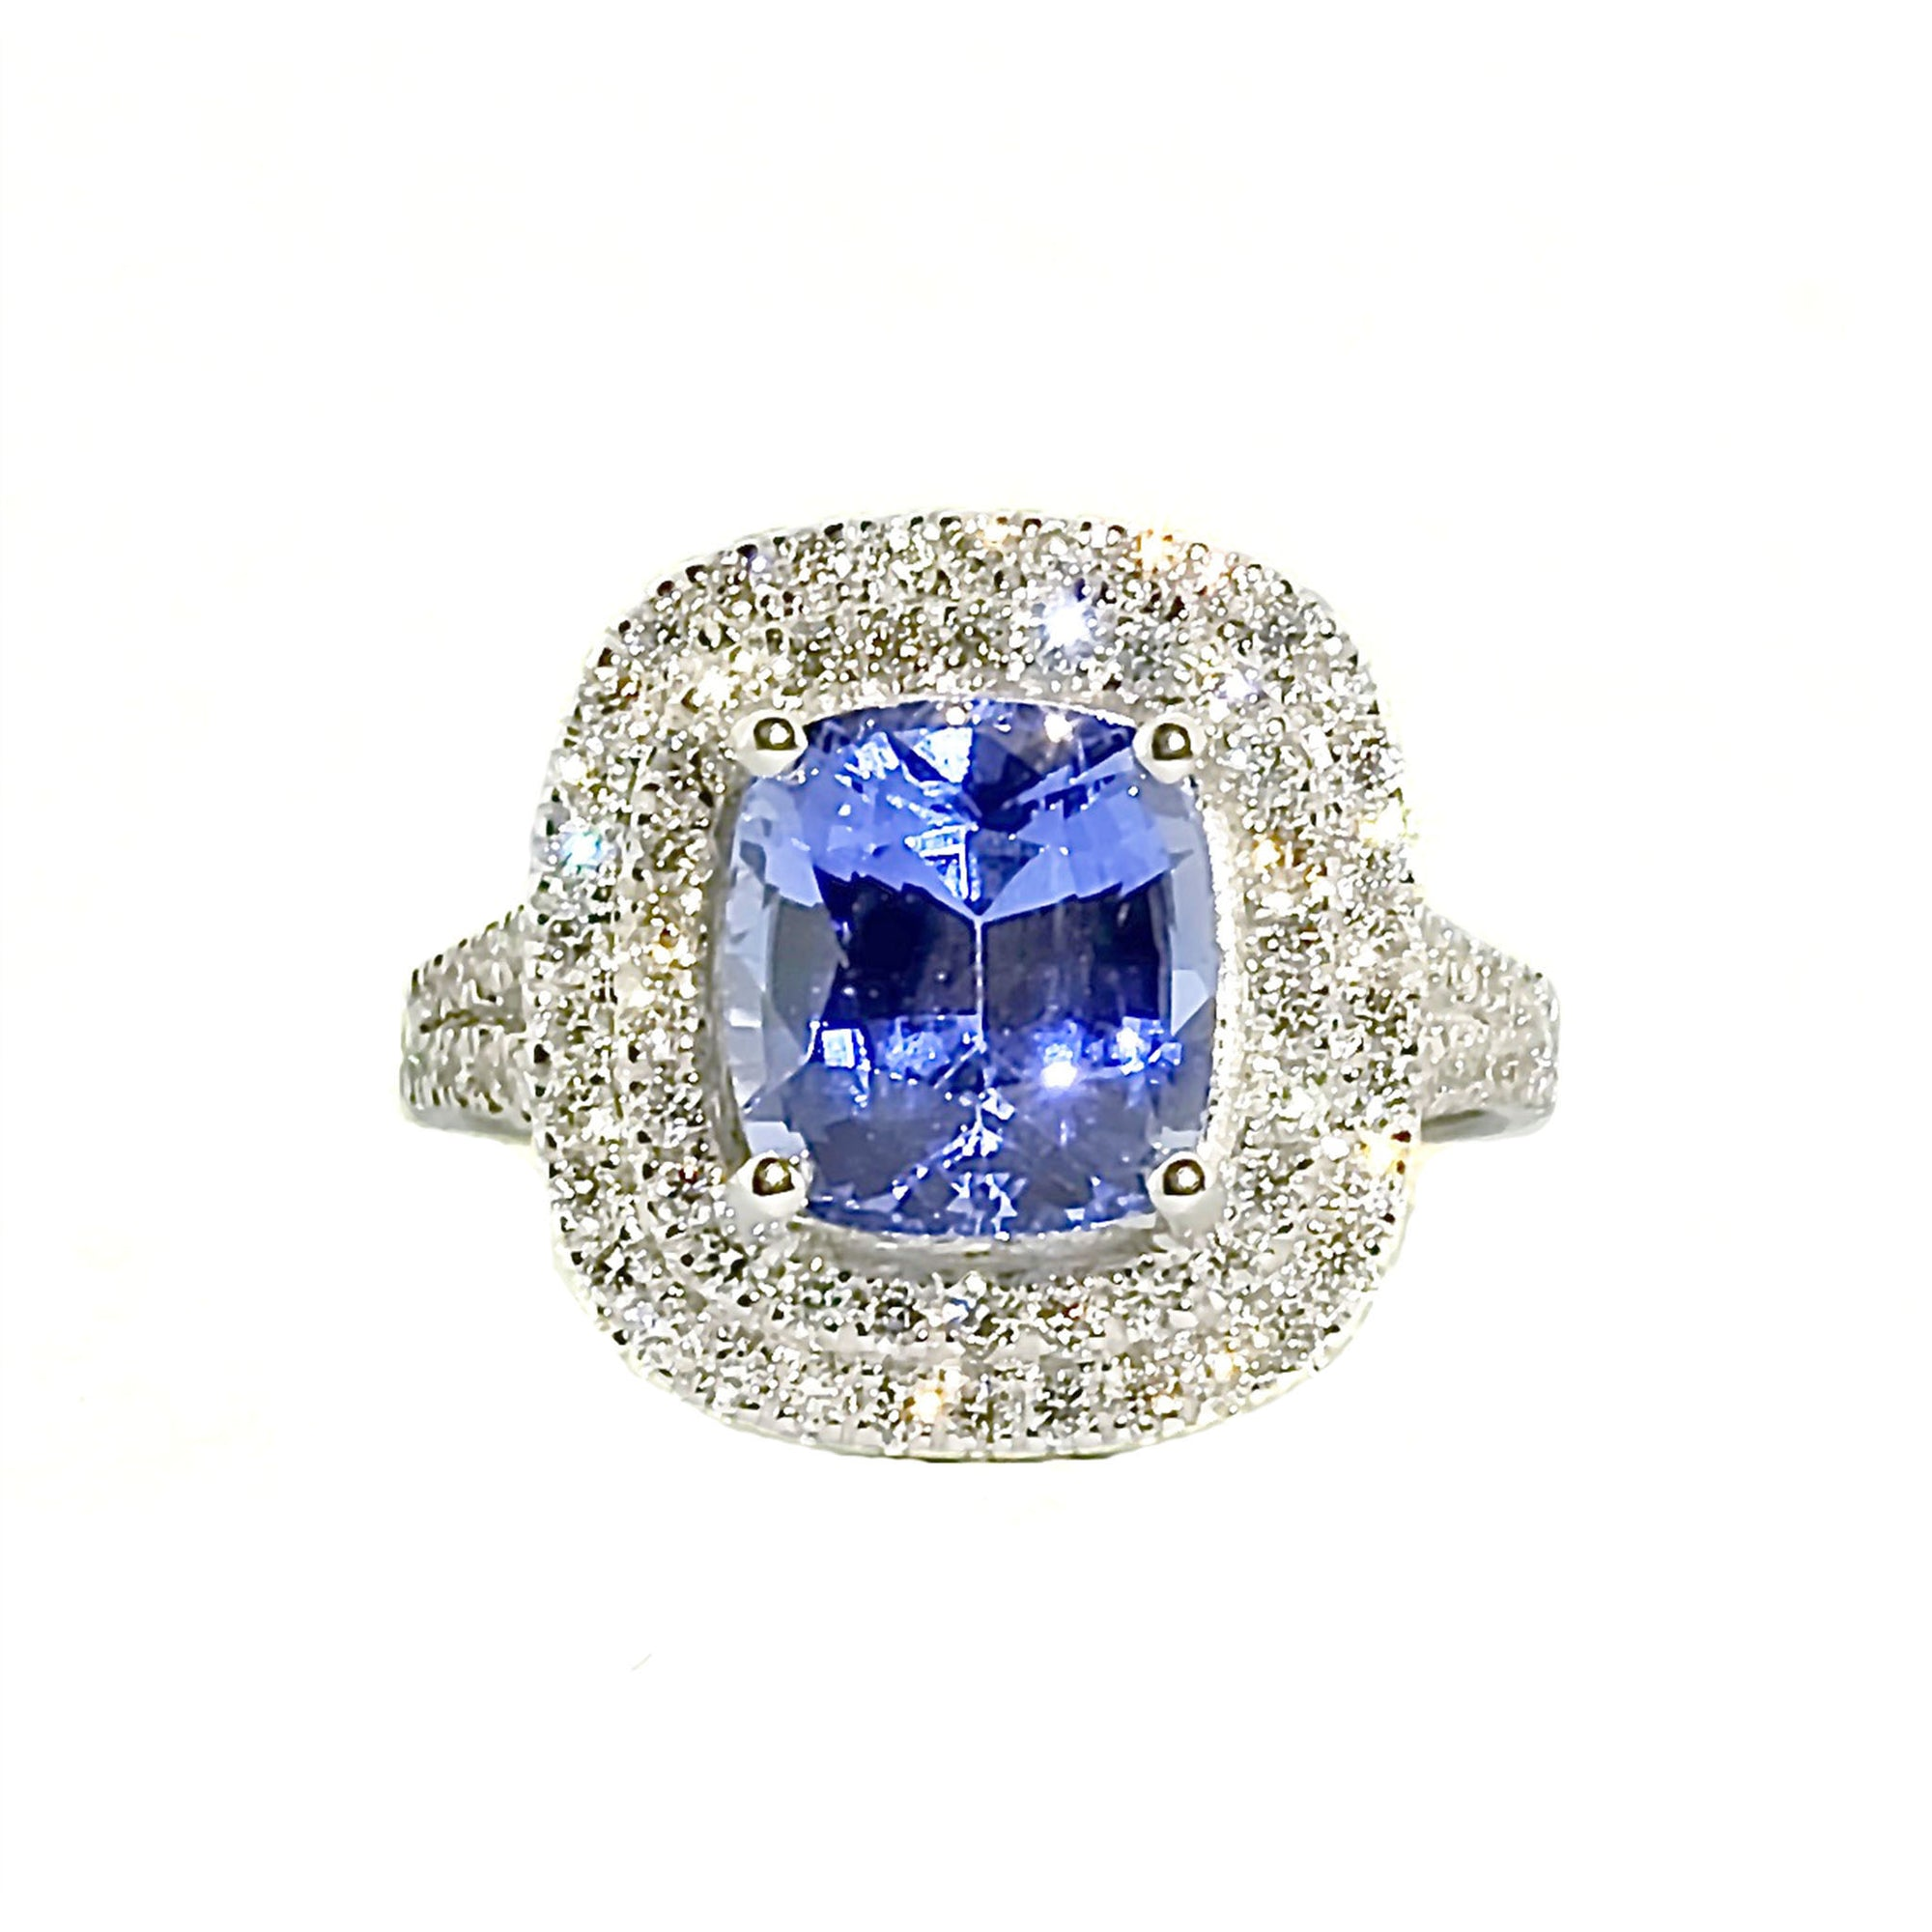 Anthio Double Halo Ring - Blue Long Cushion 2019-69